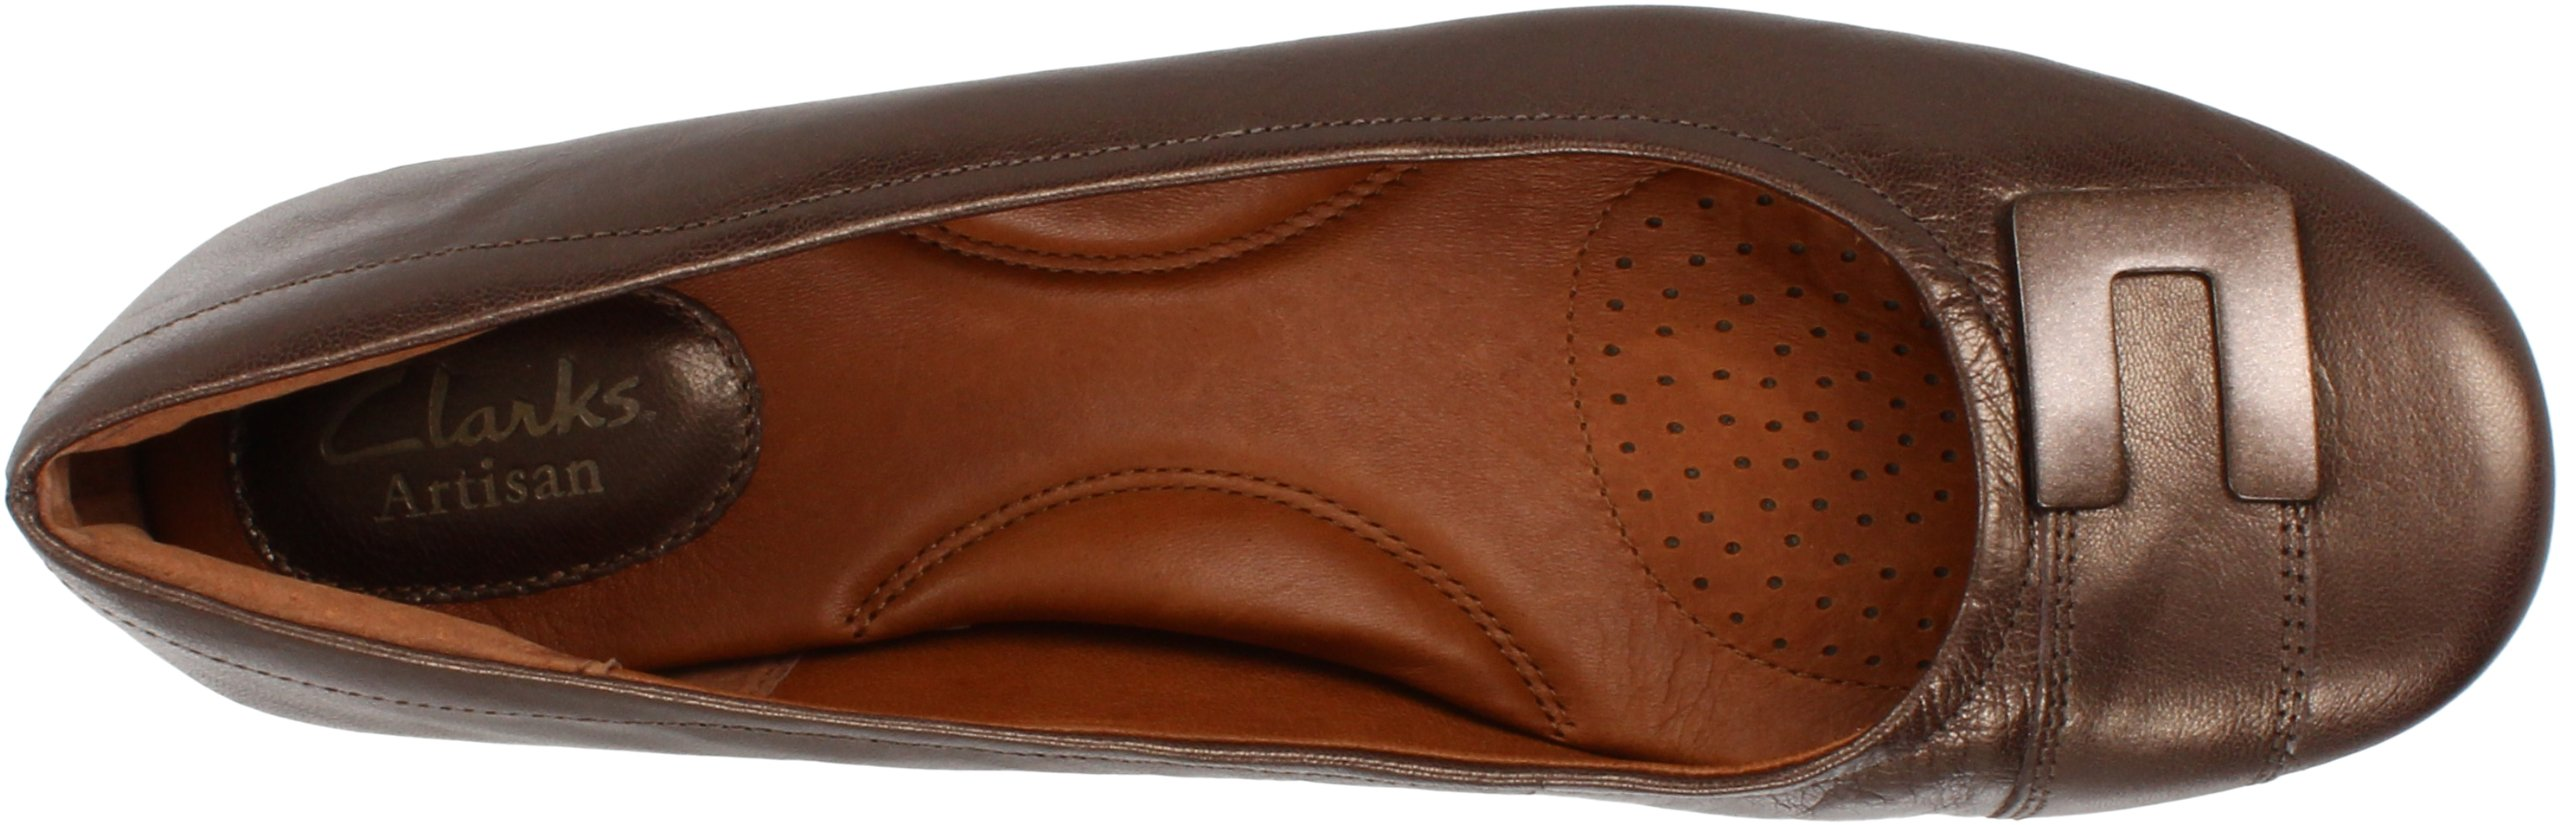 Clarks Women's Concert Choir Dress Shoes,Brown Metallic Leather,5 M US by CLARKS (Image #7)